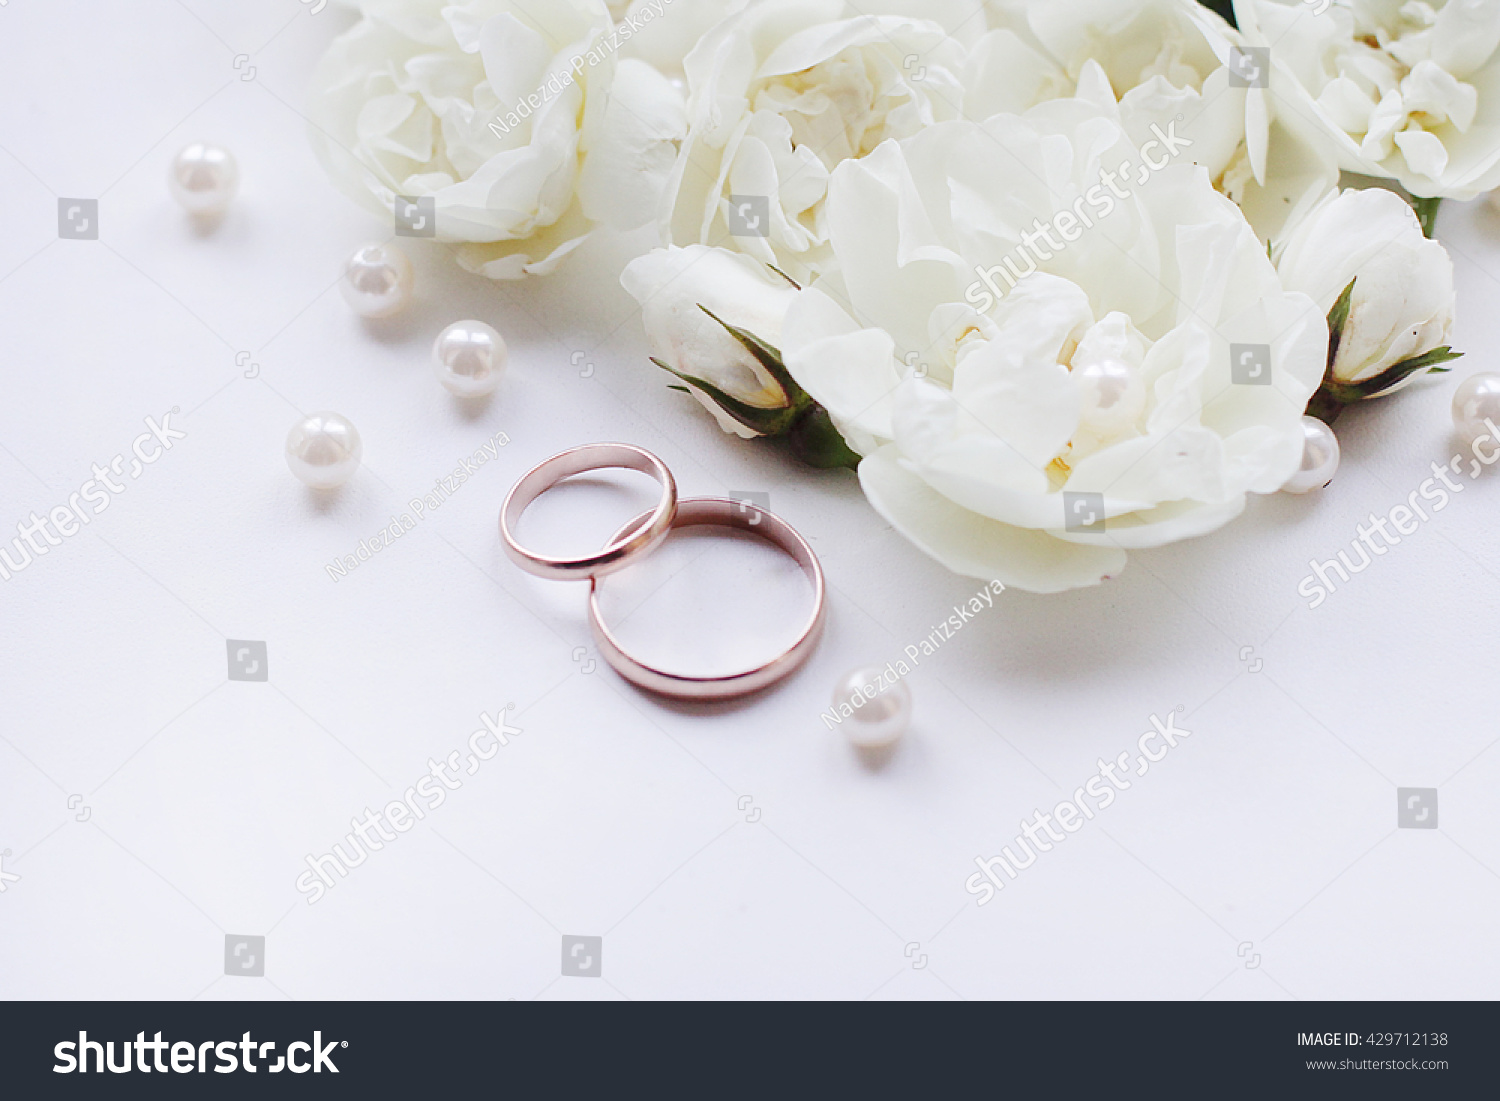 Wedding Background Invitations Other Gold Rings Stock Photo (Royalty ...